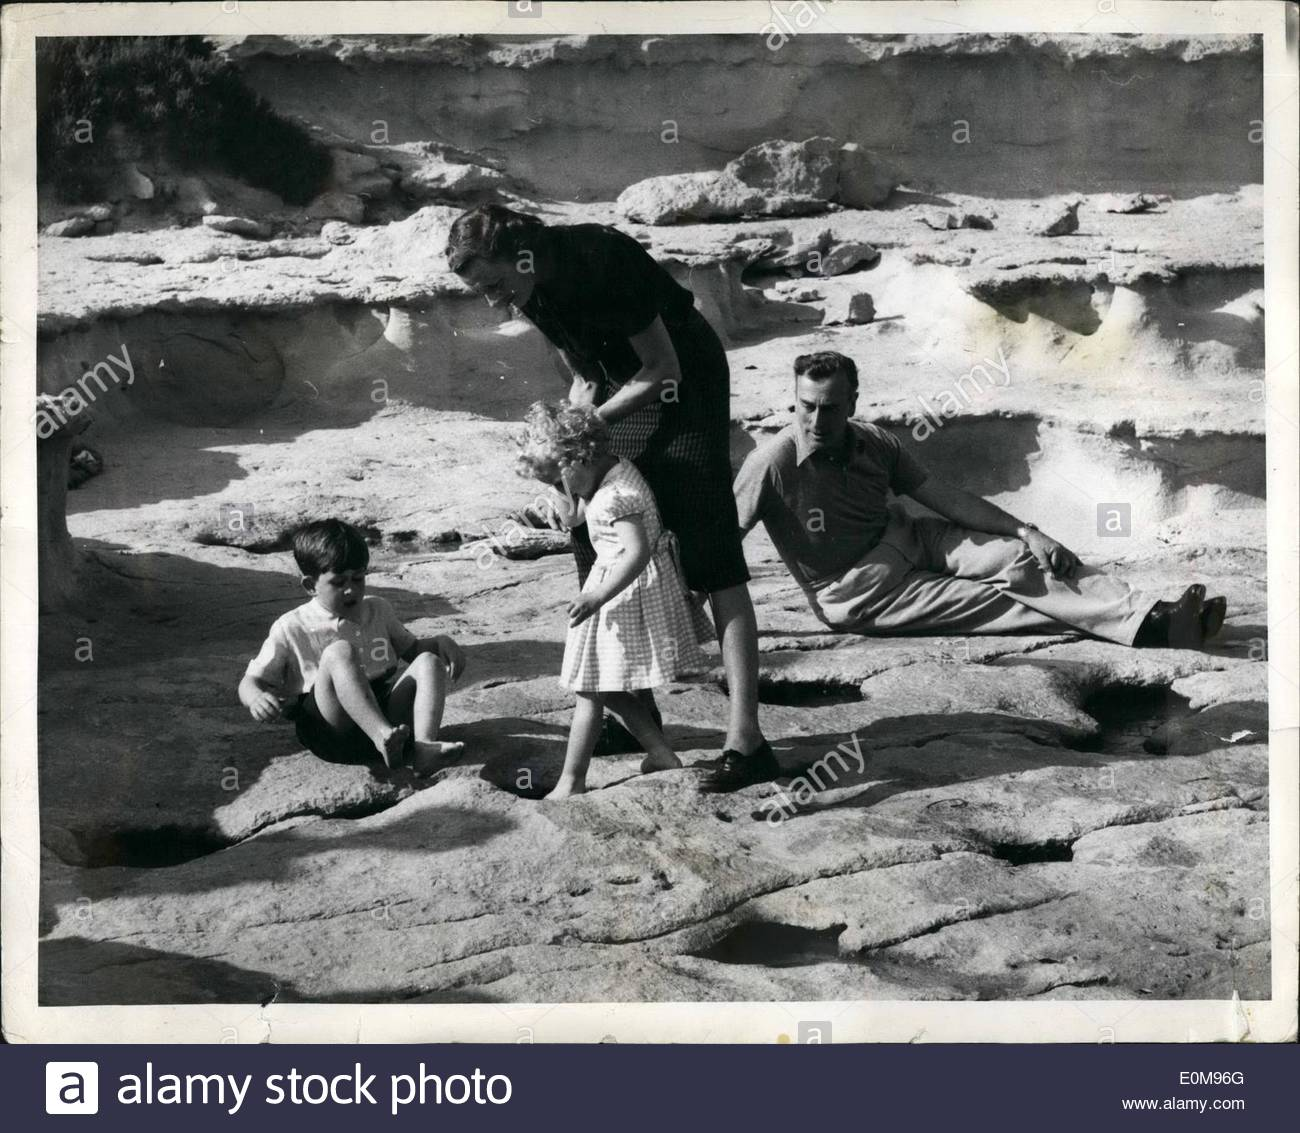 Apr. 04, 1954 - Royal Children in Malta: Lady Mountbatten lends a steadying hand as Princess Anne probes a tempting paddling pool. Elder brother Prince Charles dangles his feet into a pool unaided, but a watchful eye is kept on him by ''Uncle Dickie'' - Earl Mountbatten. Credit: Popperfoto - Stock Image